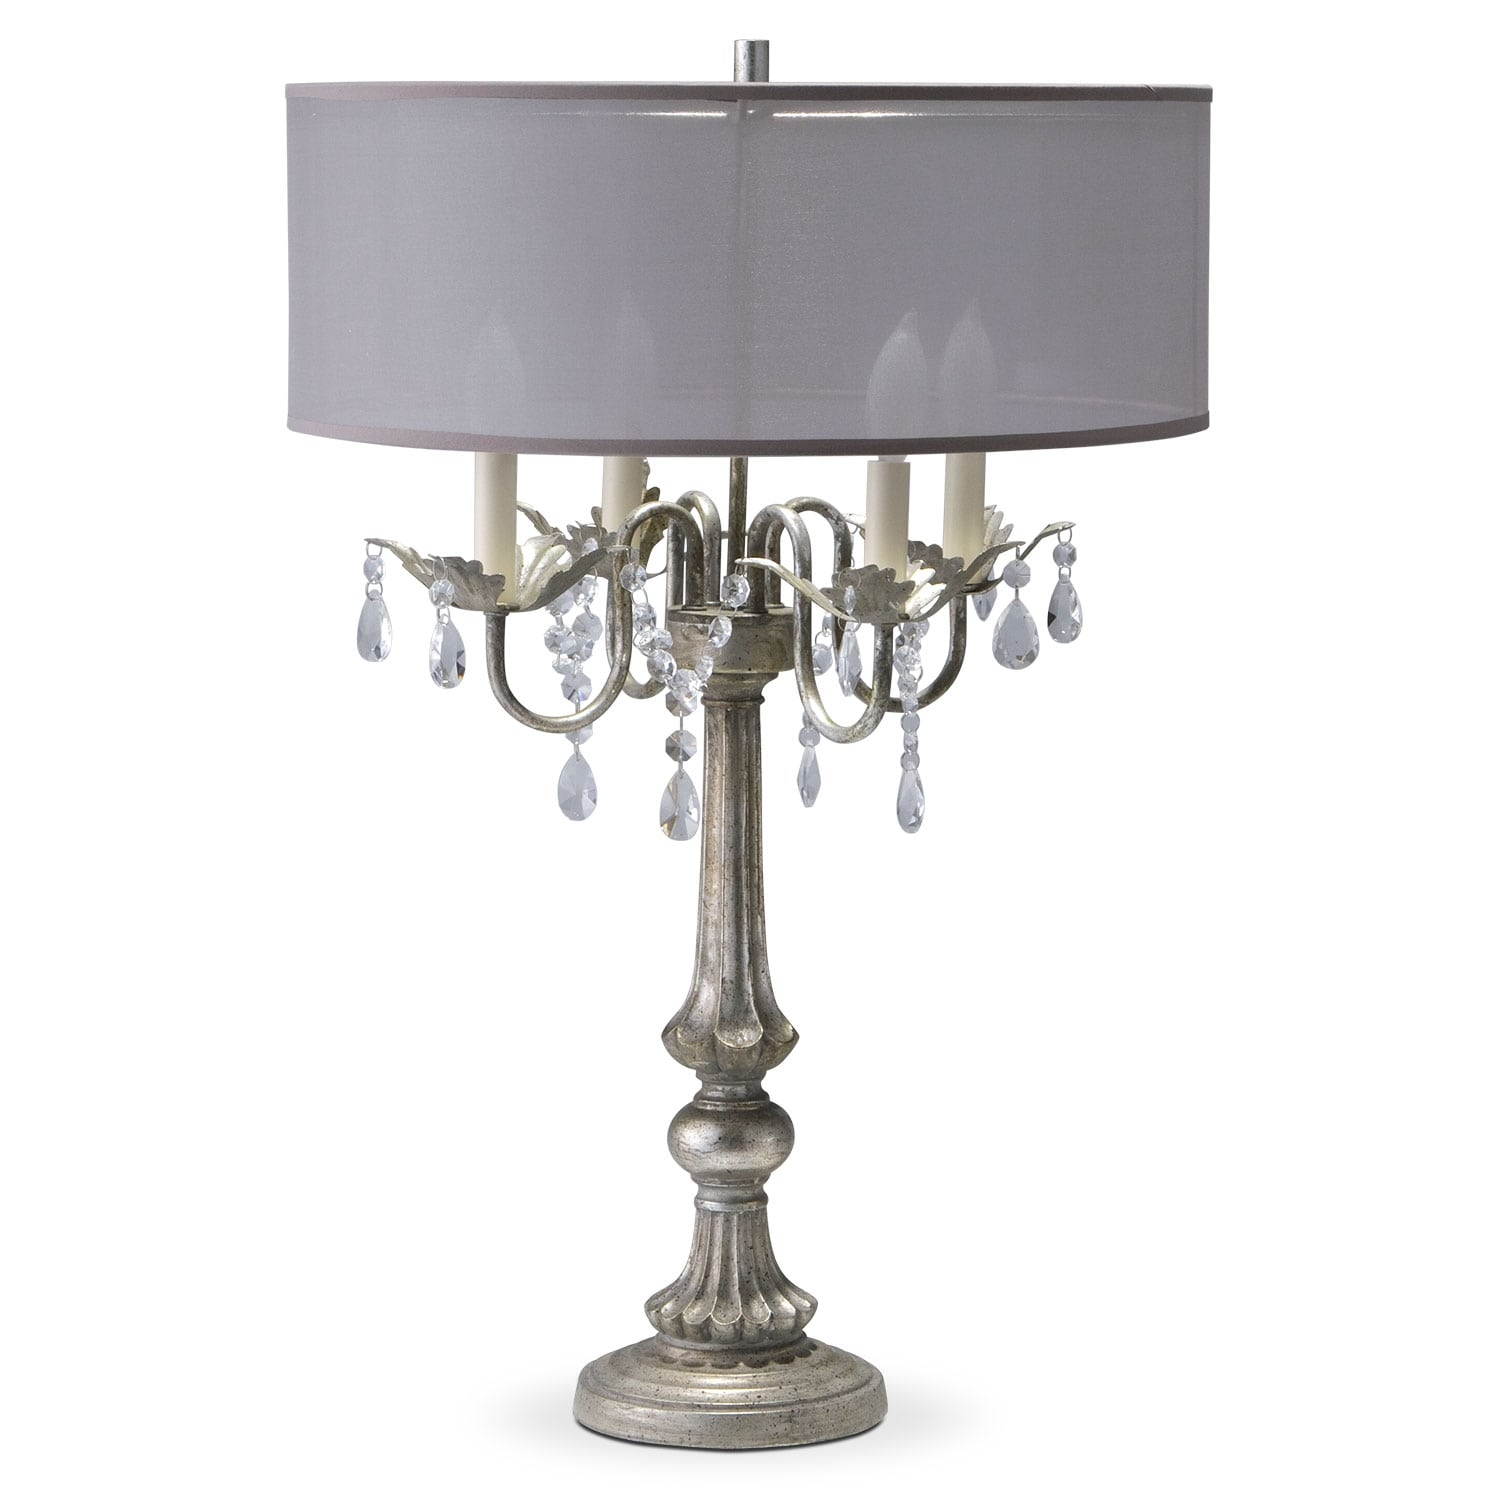 Charmant Chandelier Table Lamp